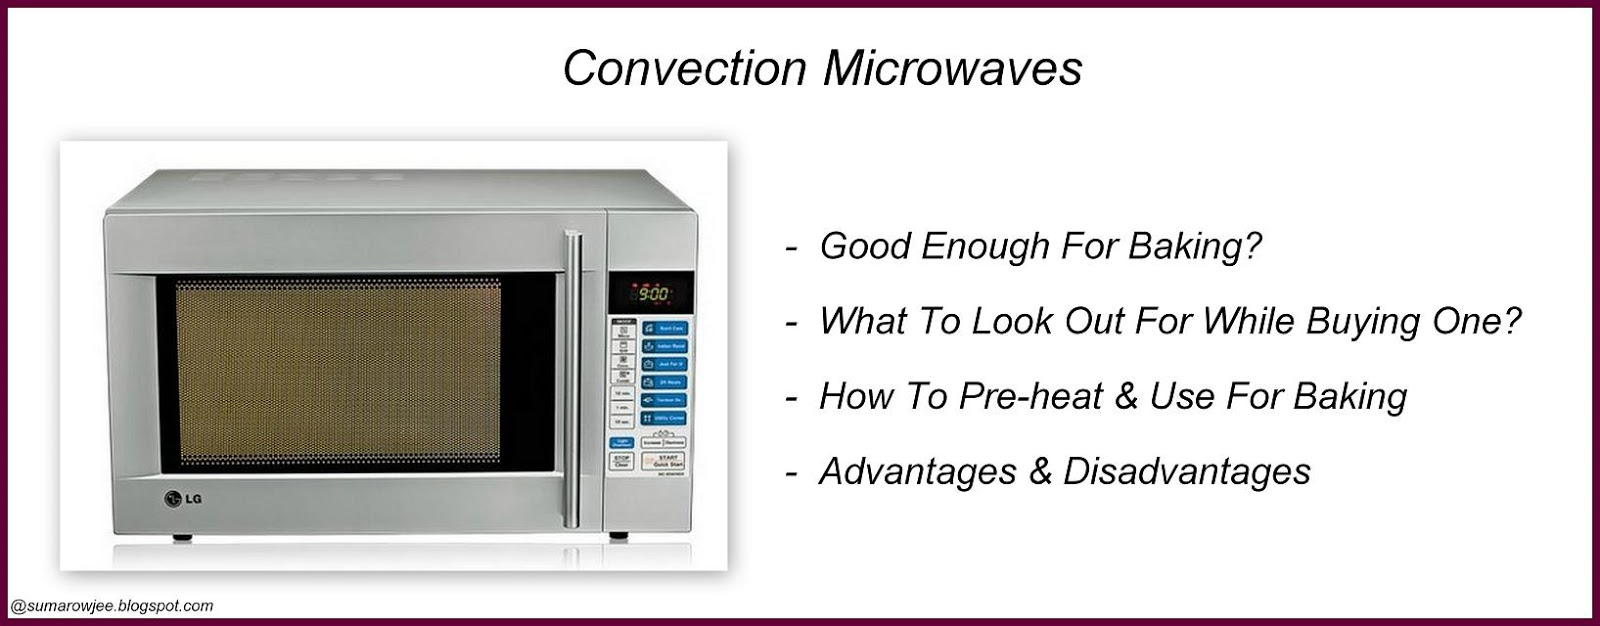 How To Use Convection Microwave For Baking Cake